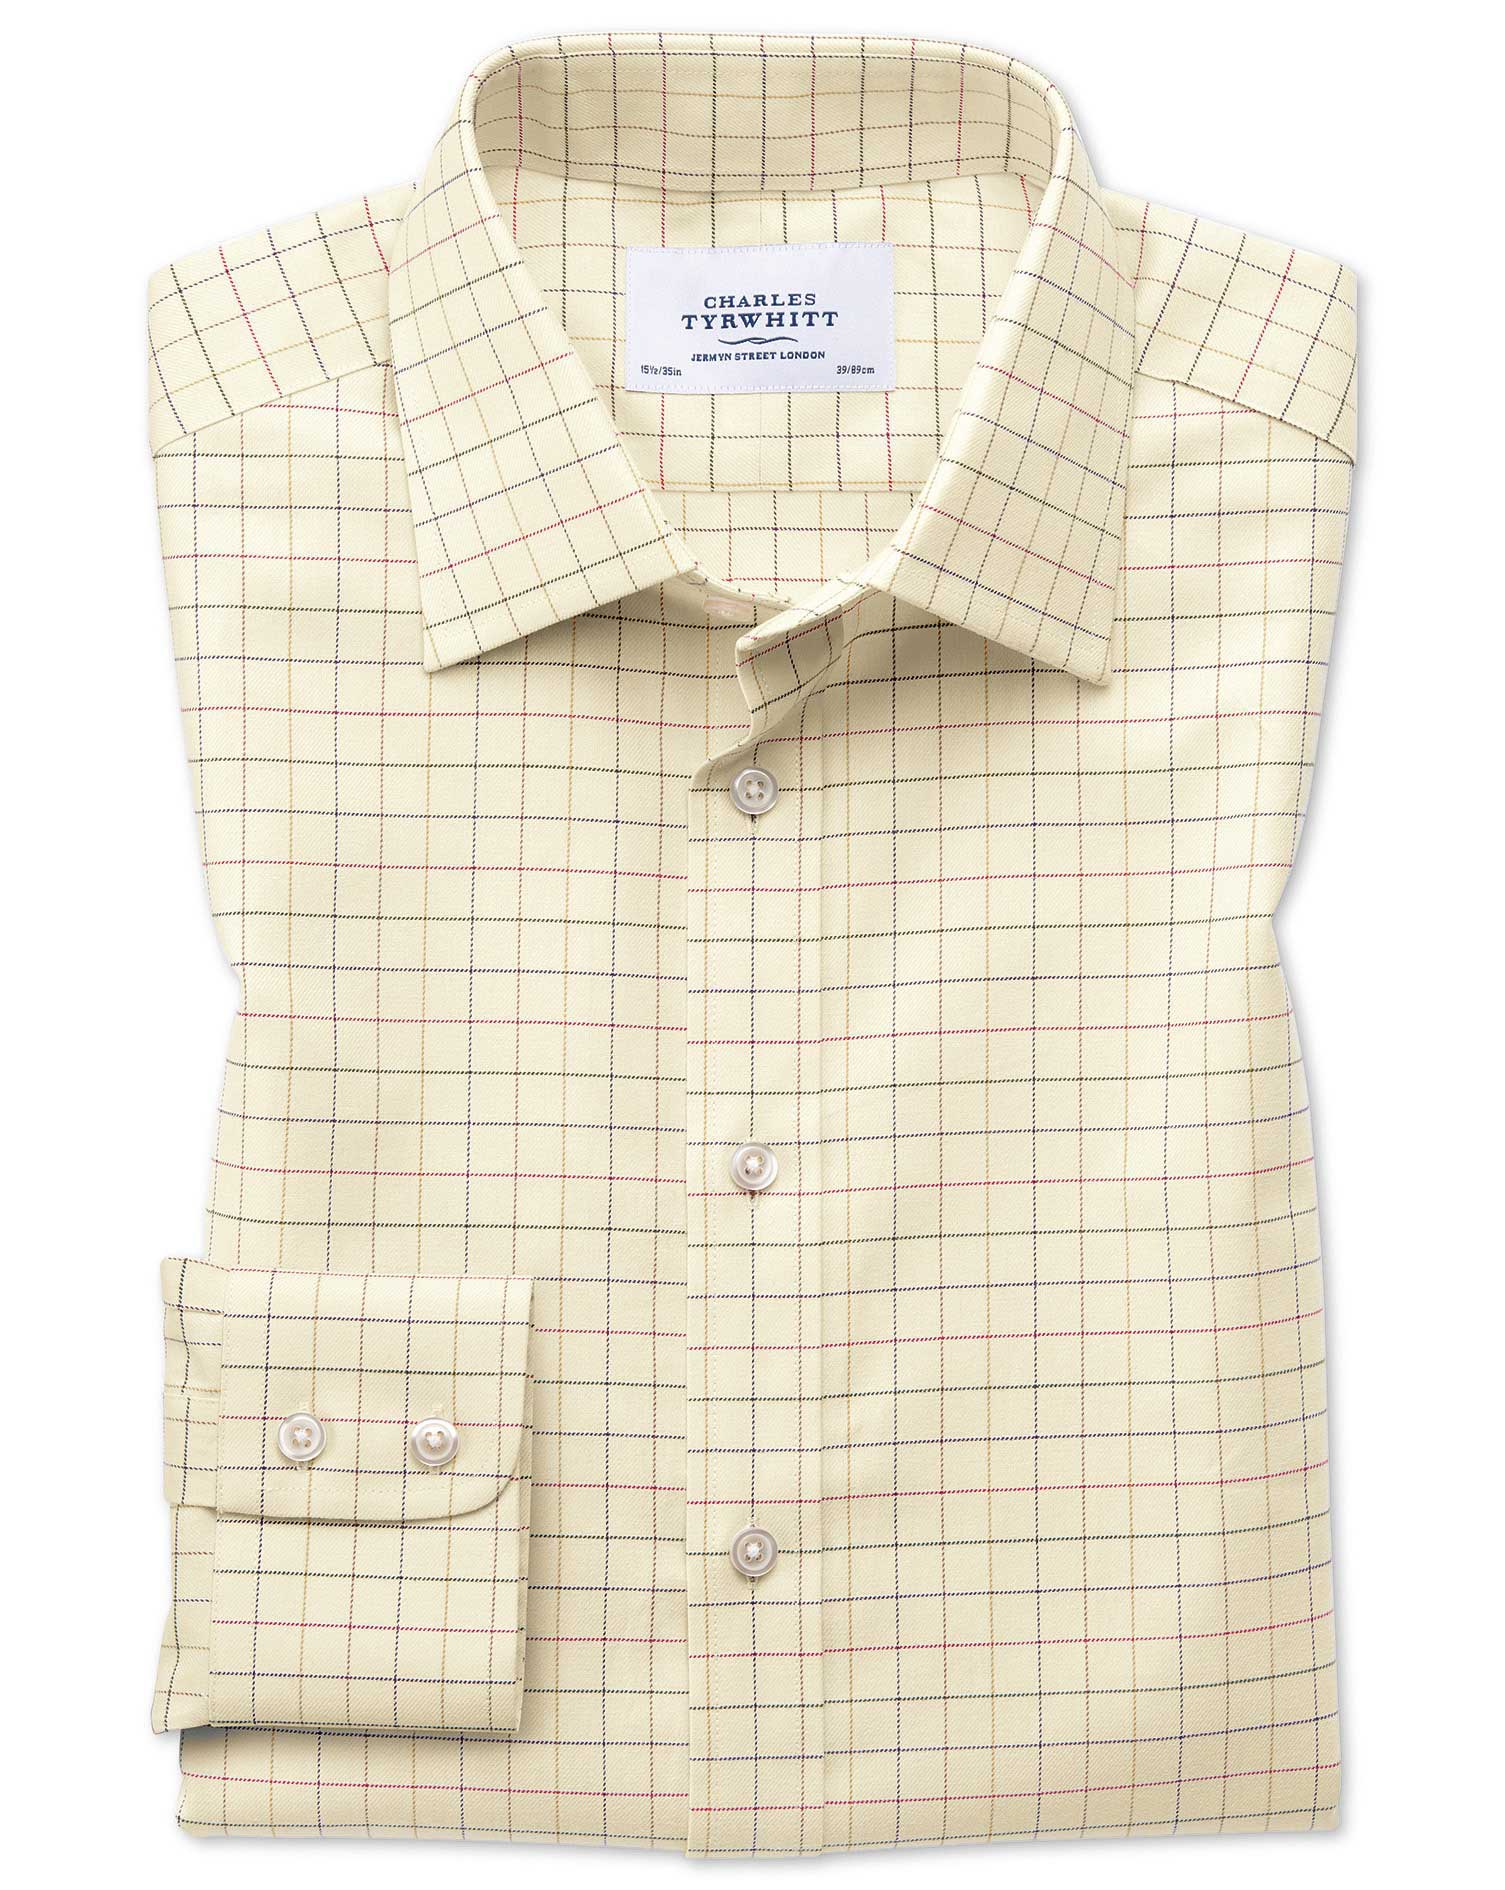 Classic Fit Country Check Multi Cotton Formal Shirt Single Cuff Size 16.5/33 by Charles Tyrwhitt